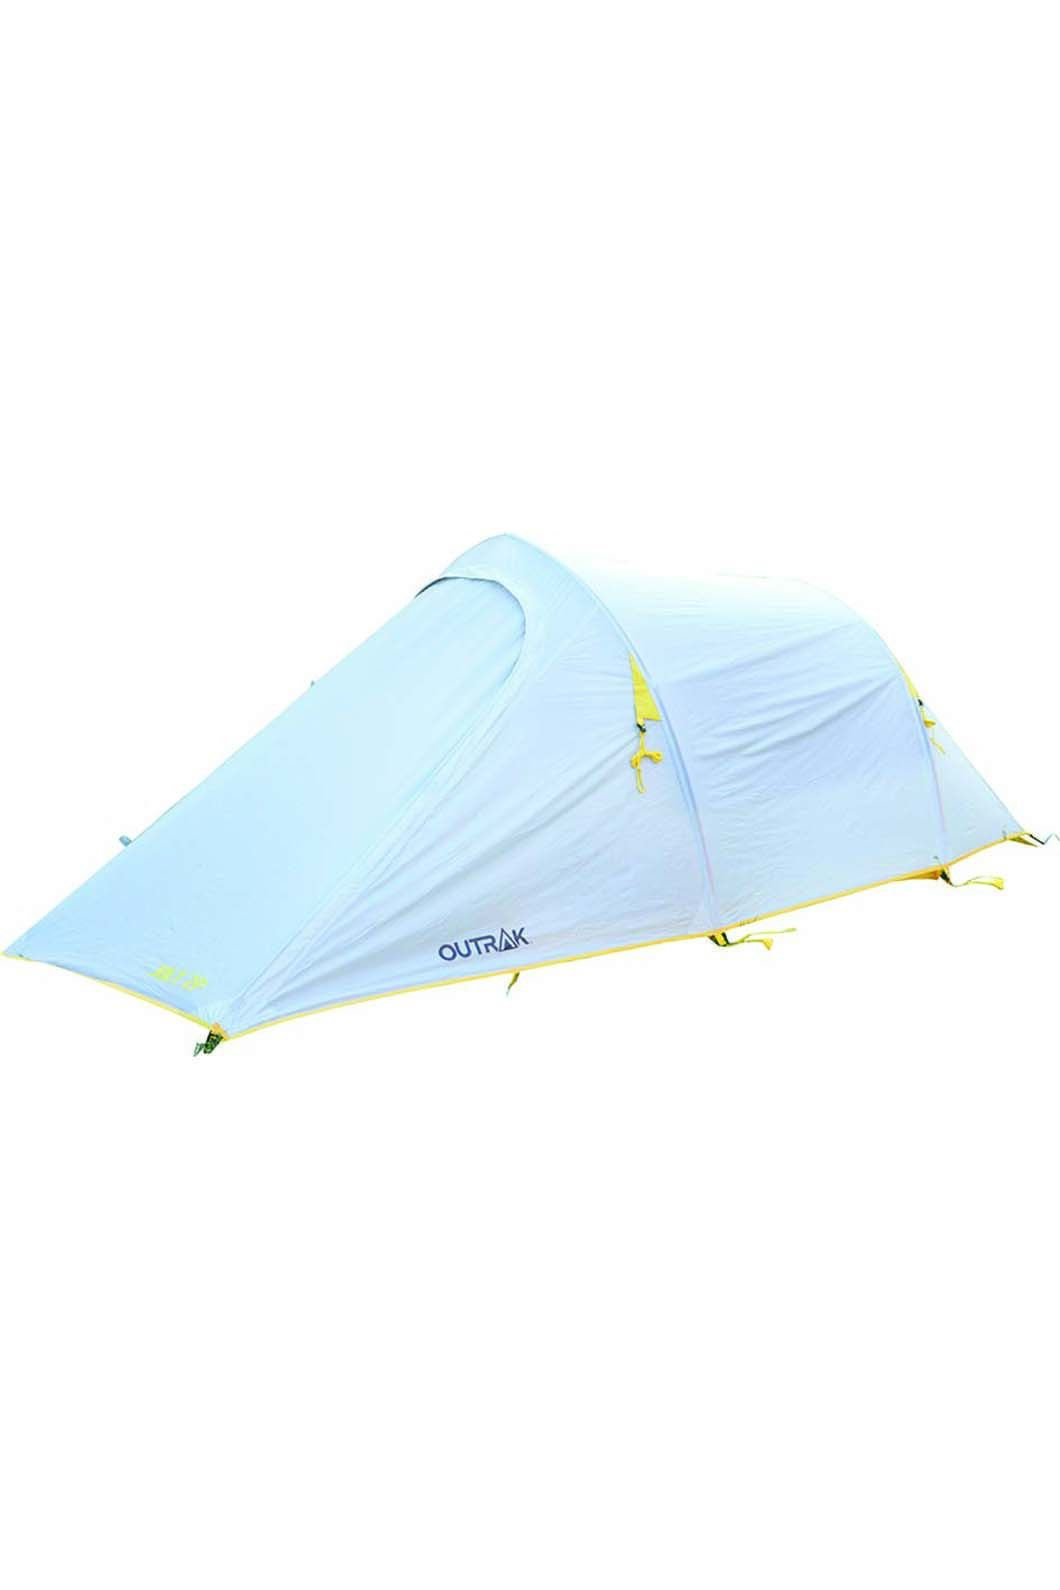 Outrak Jolt UL 2 Person Hiking Tent, None, hi-res